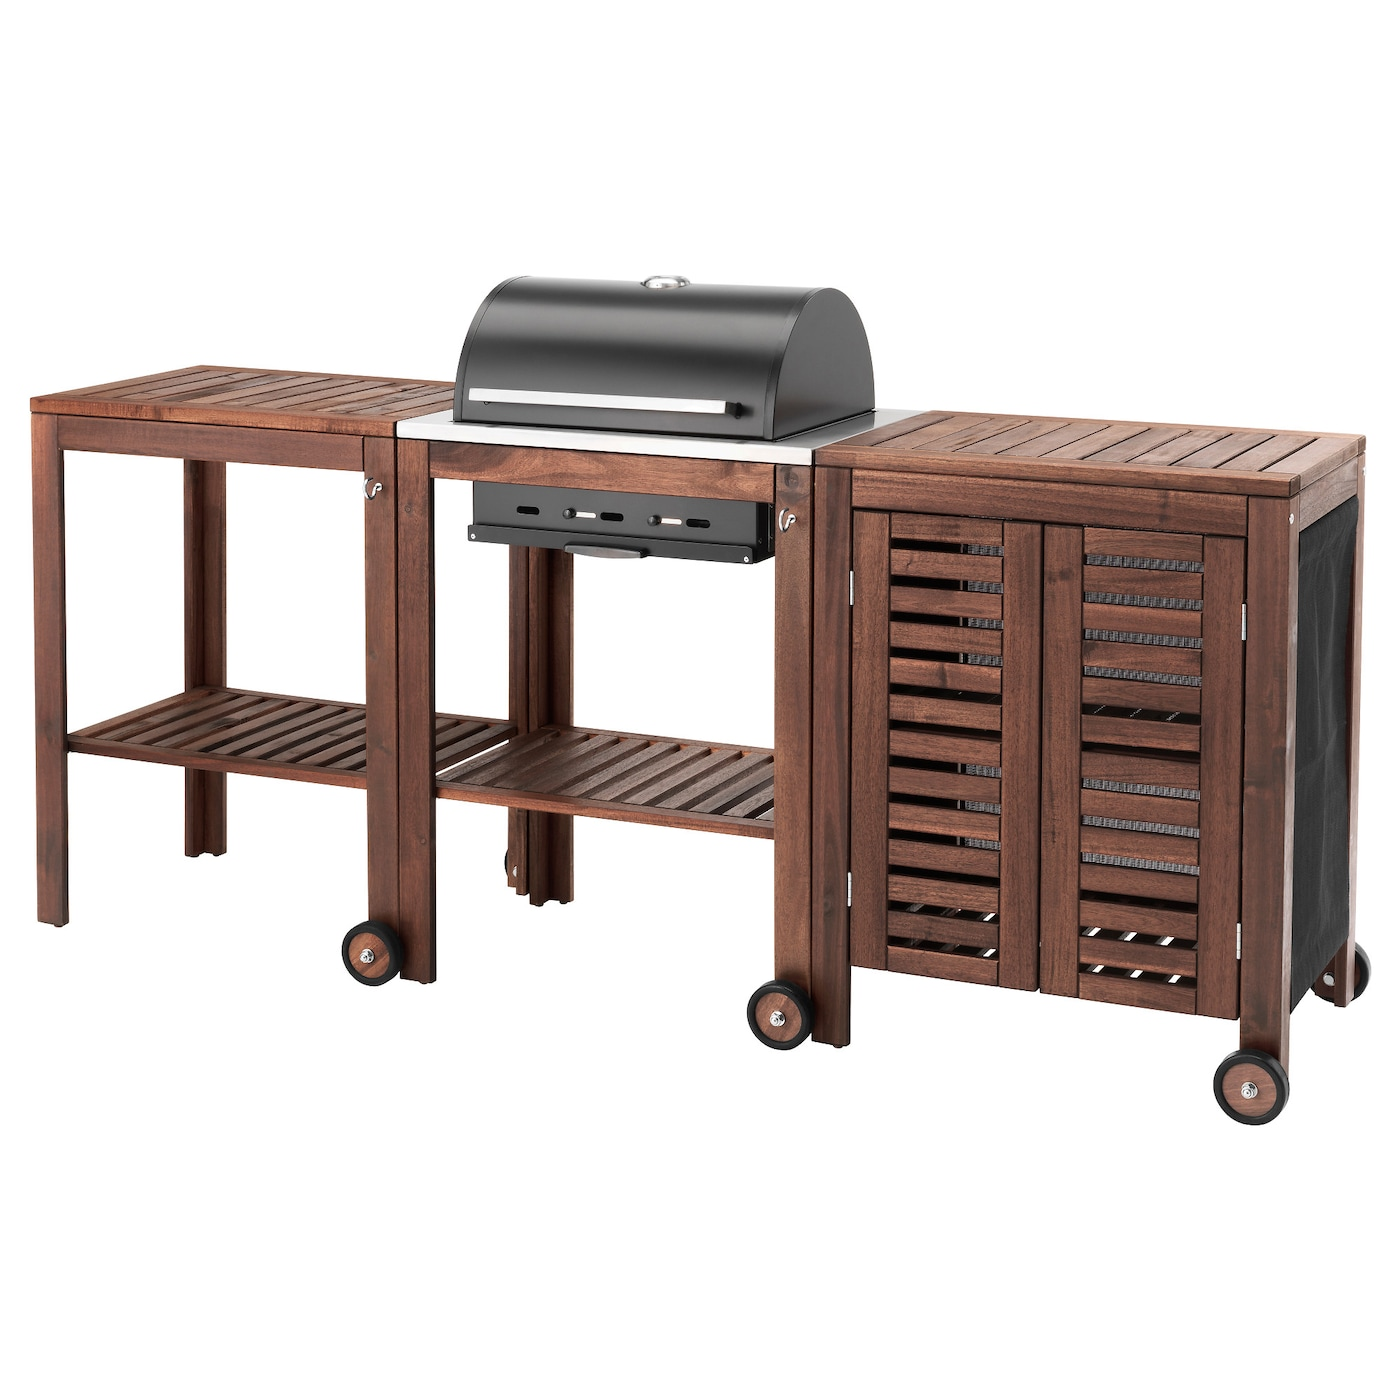 Outdoor Kitchen Stainless Steel Cabinets 196 Pplar 214 Klasen Charcoal Barbecue W Trolley Cabinet Brown